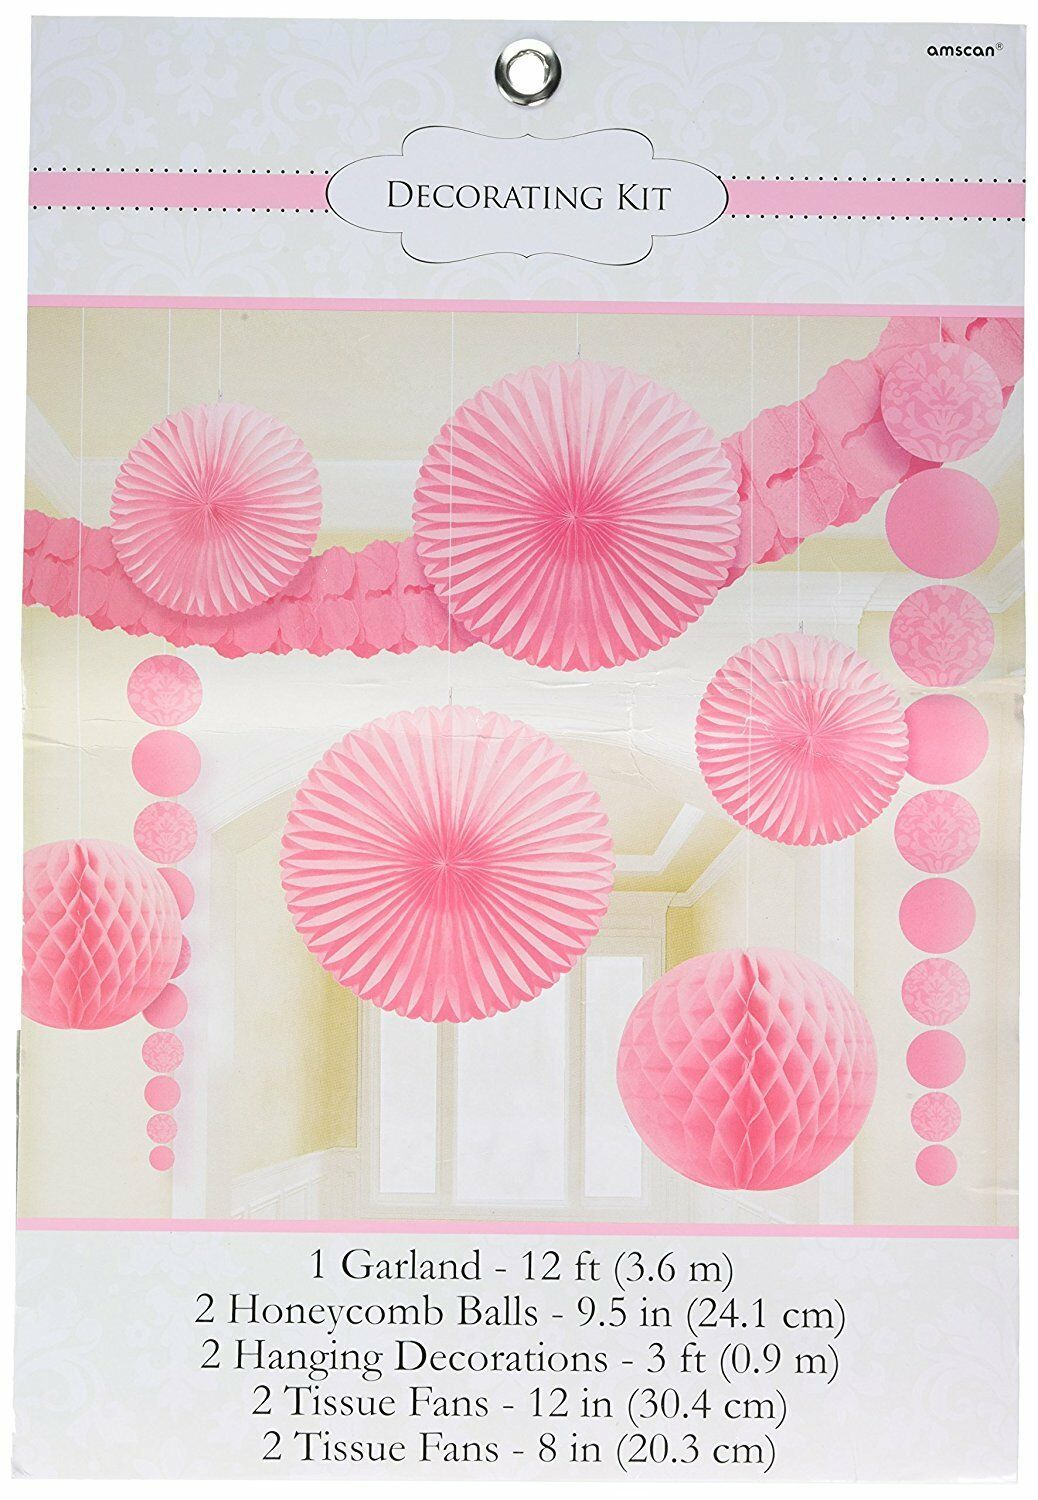 Classy Damask Party Decorating Kit, New Pink, Paper, (Pack of 9) Wedding